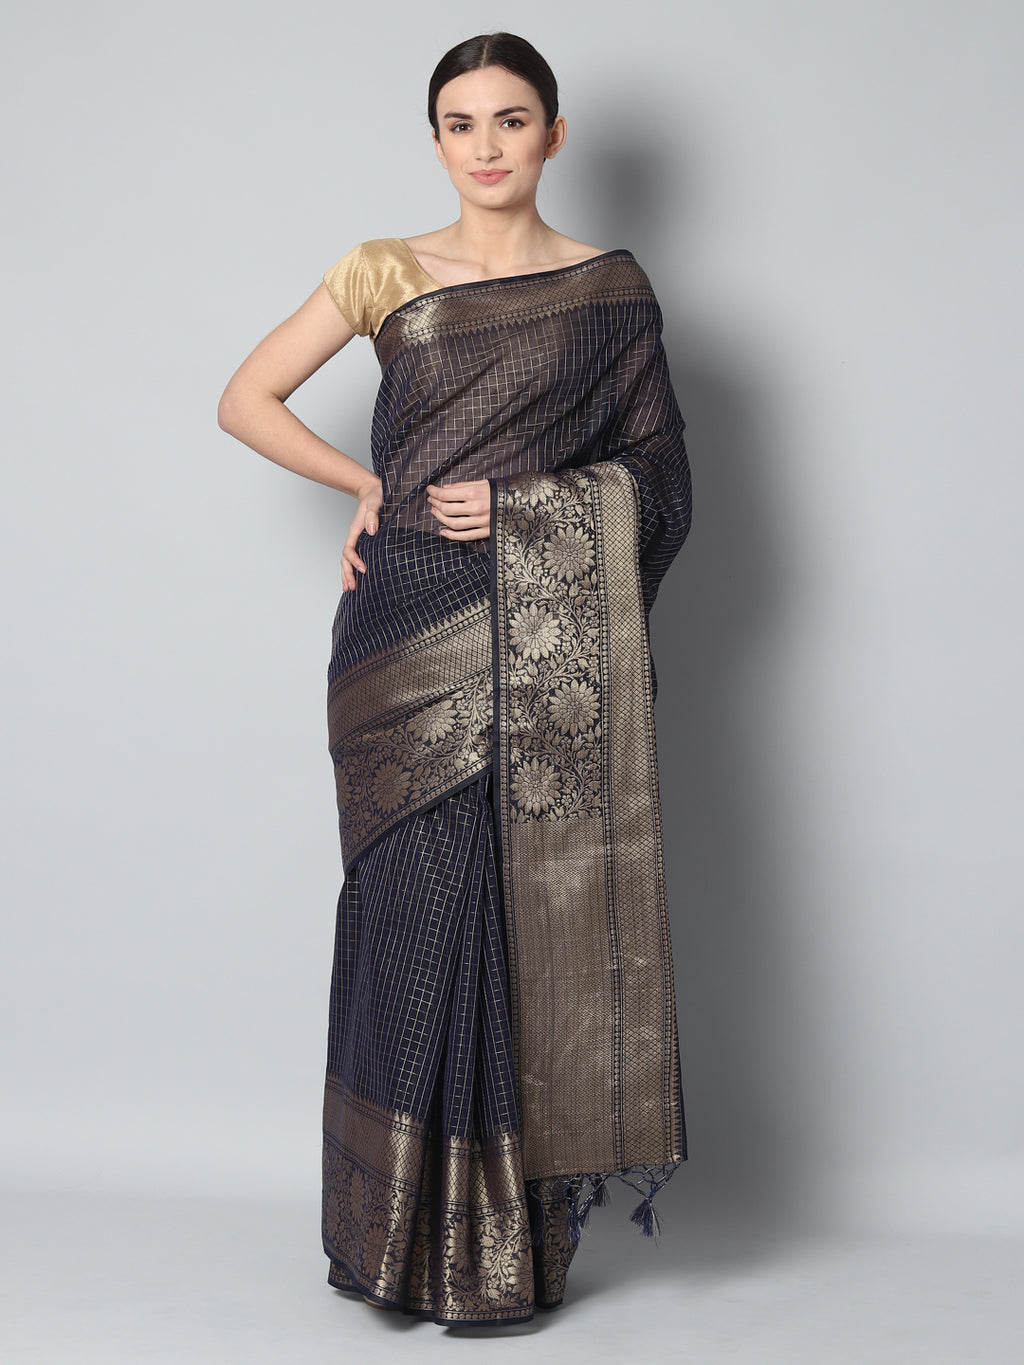 Small checks of antique gold on black chanderi saree and wide border